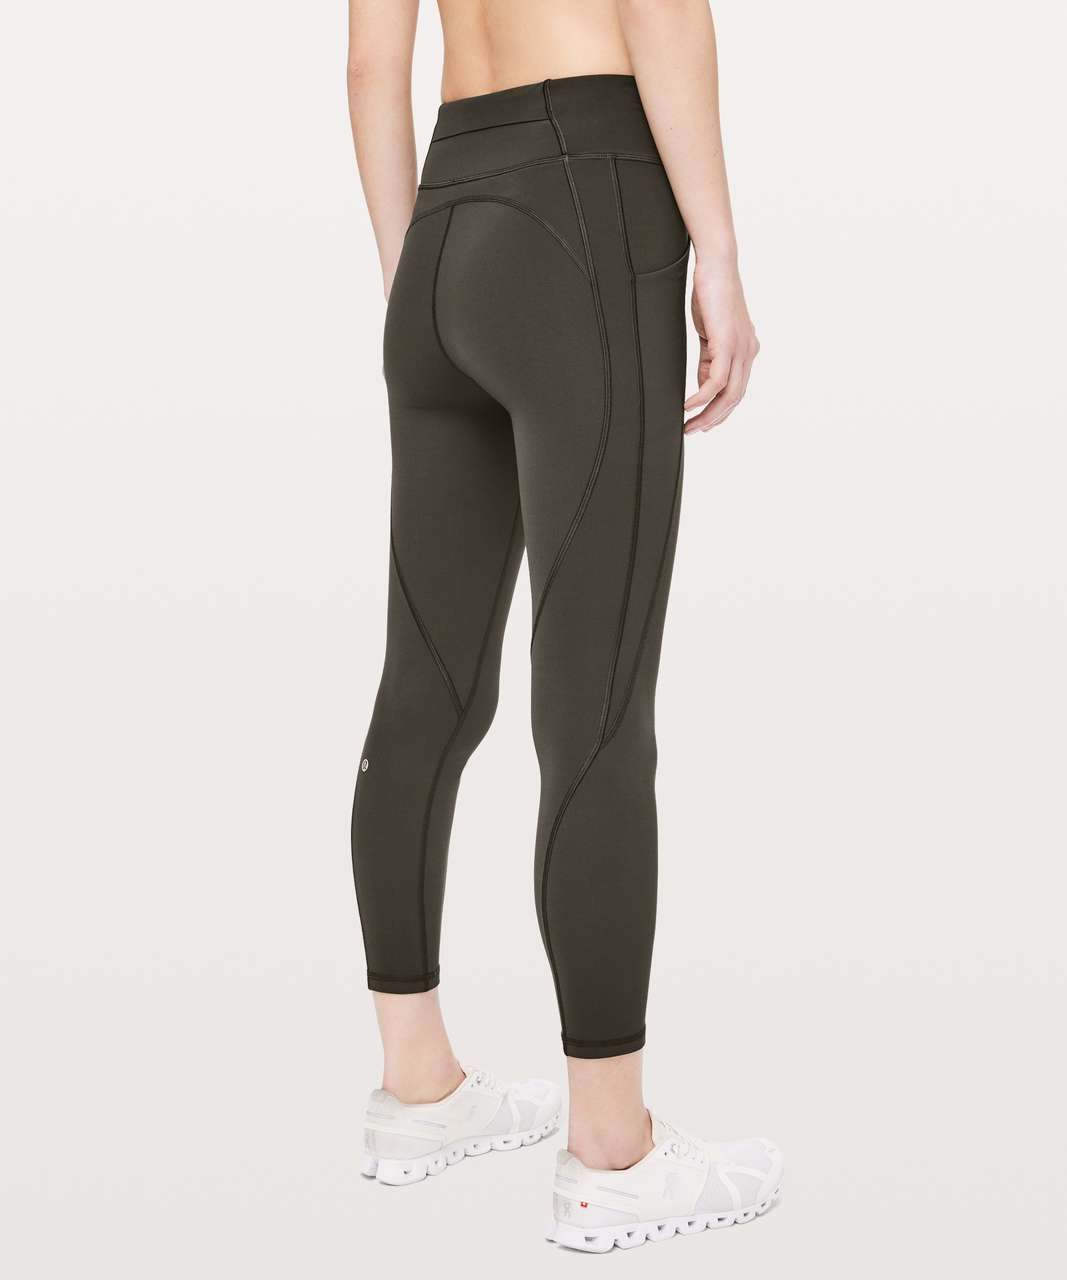 "Lululemon Time To Sweat 7/8 Tight 25"" - Dark Olive"